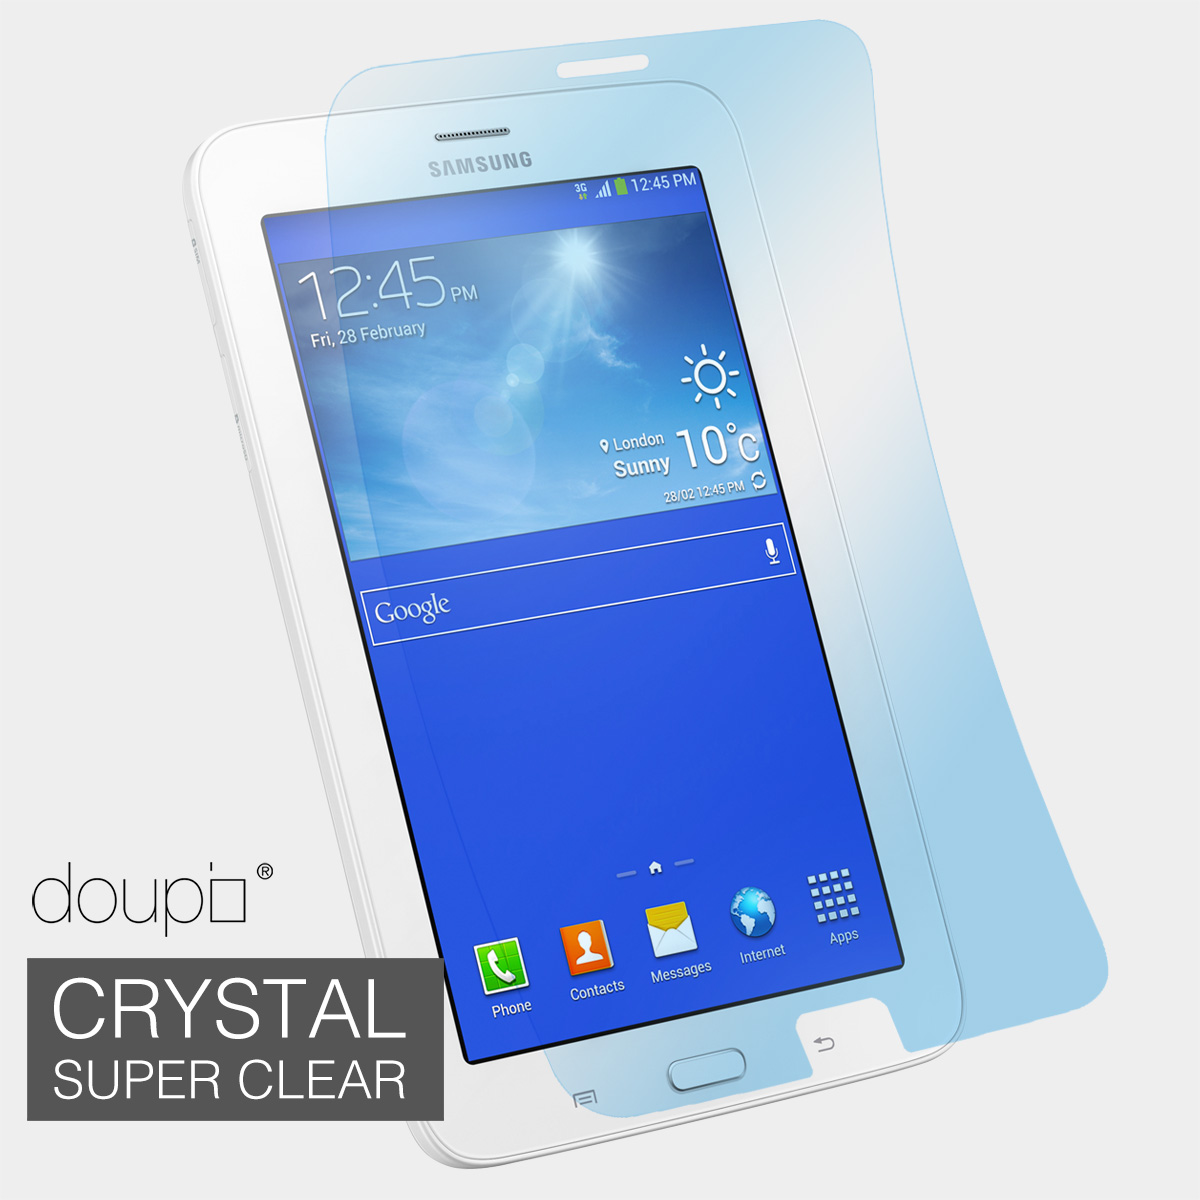 crystal super clear protective film f samsung galaxy tab 3 lite 7 inch ebay. Black Bedroom Furniture Sets. Home Design Ideas